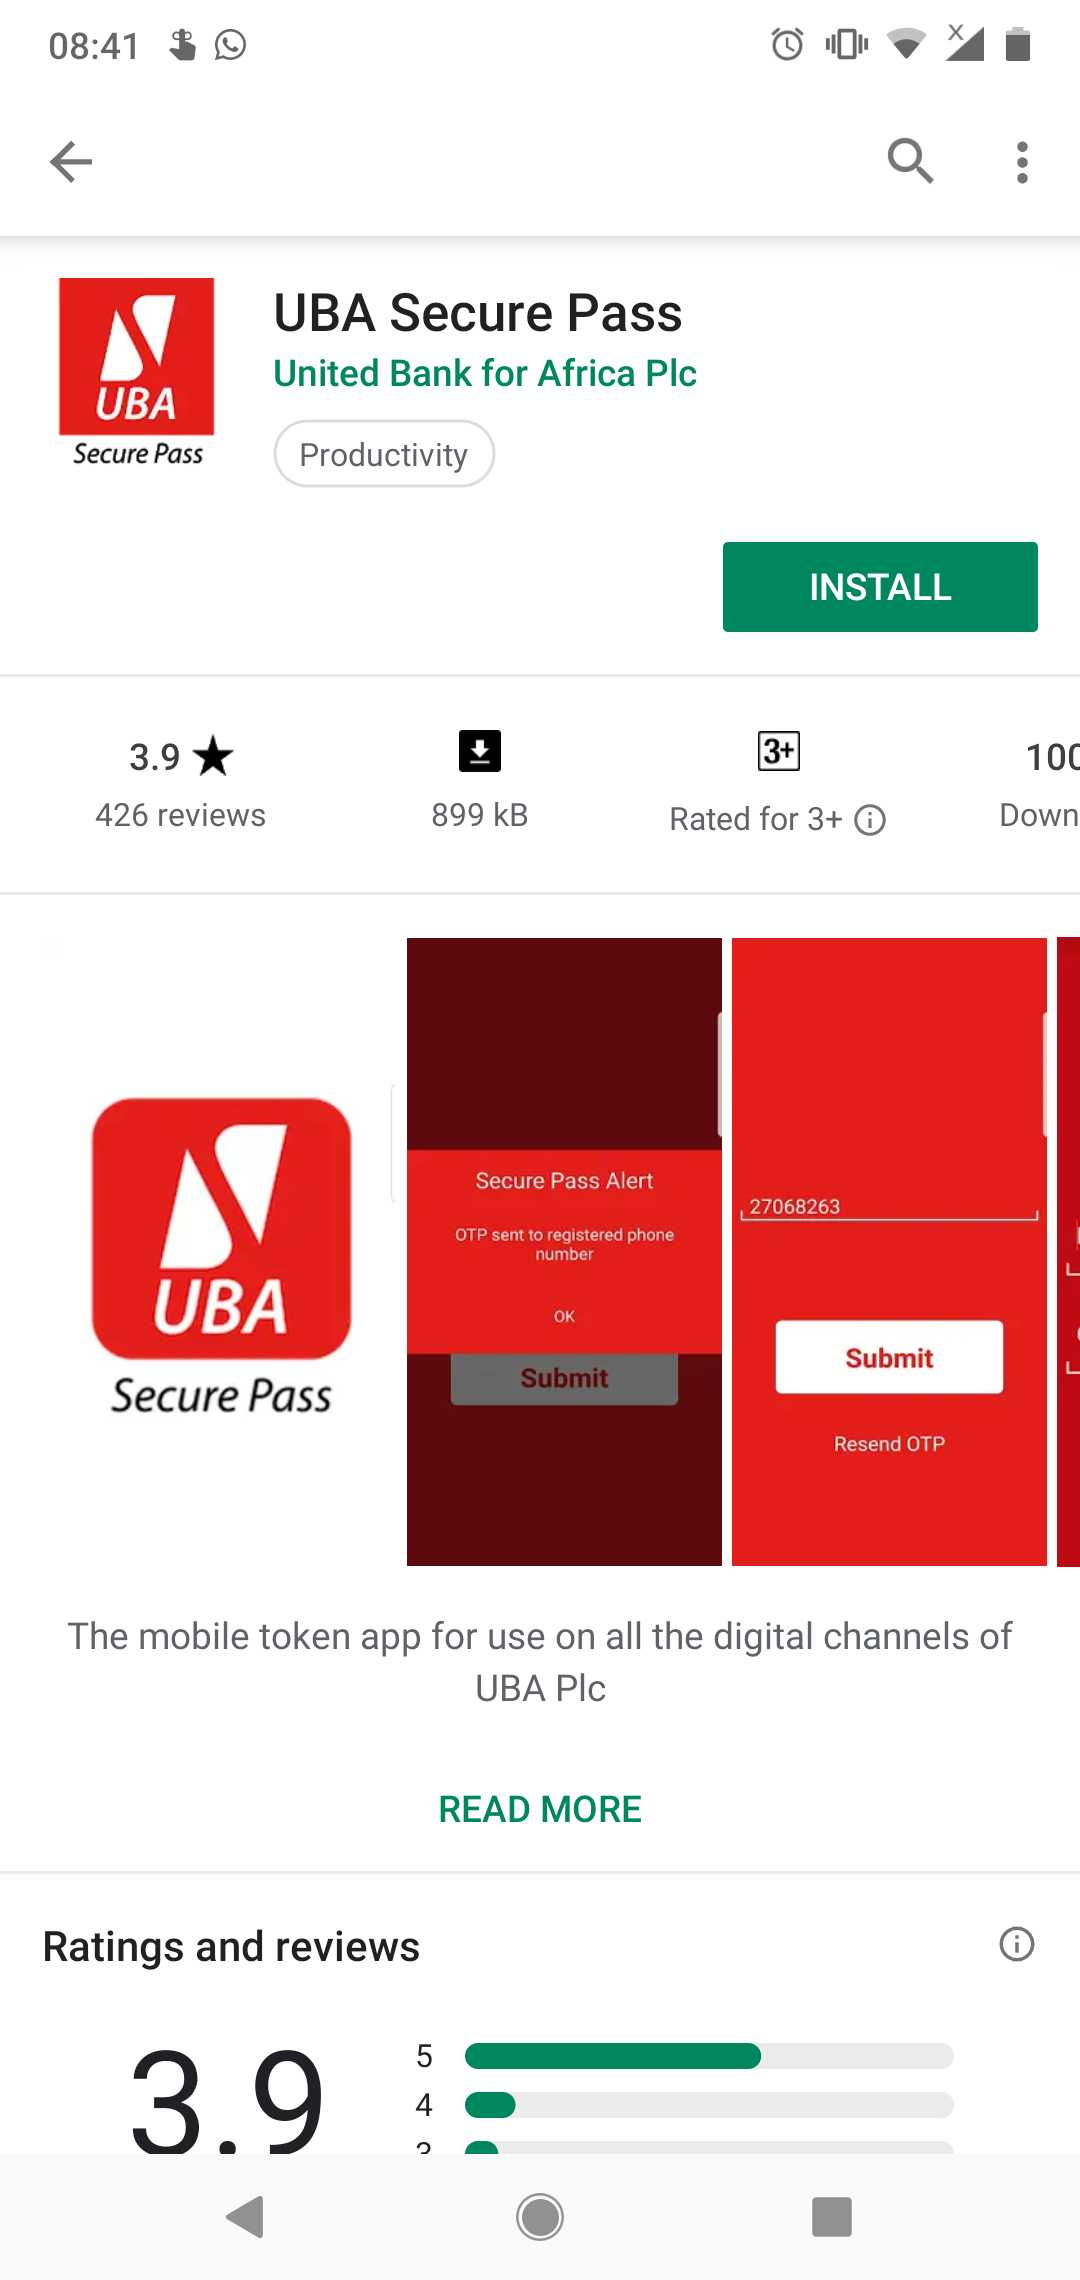 How to Setup UBA Secure Pass to Generate OTPs - Paystack